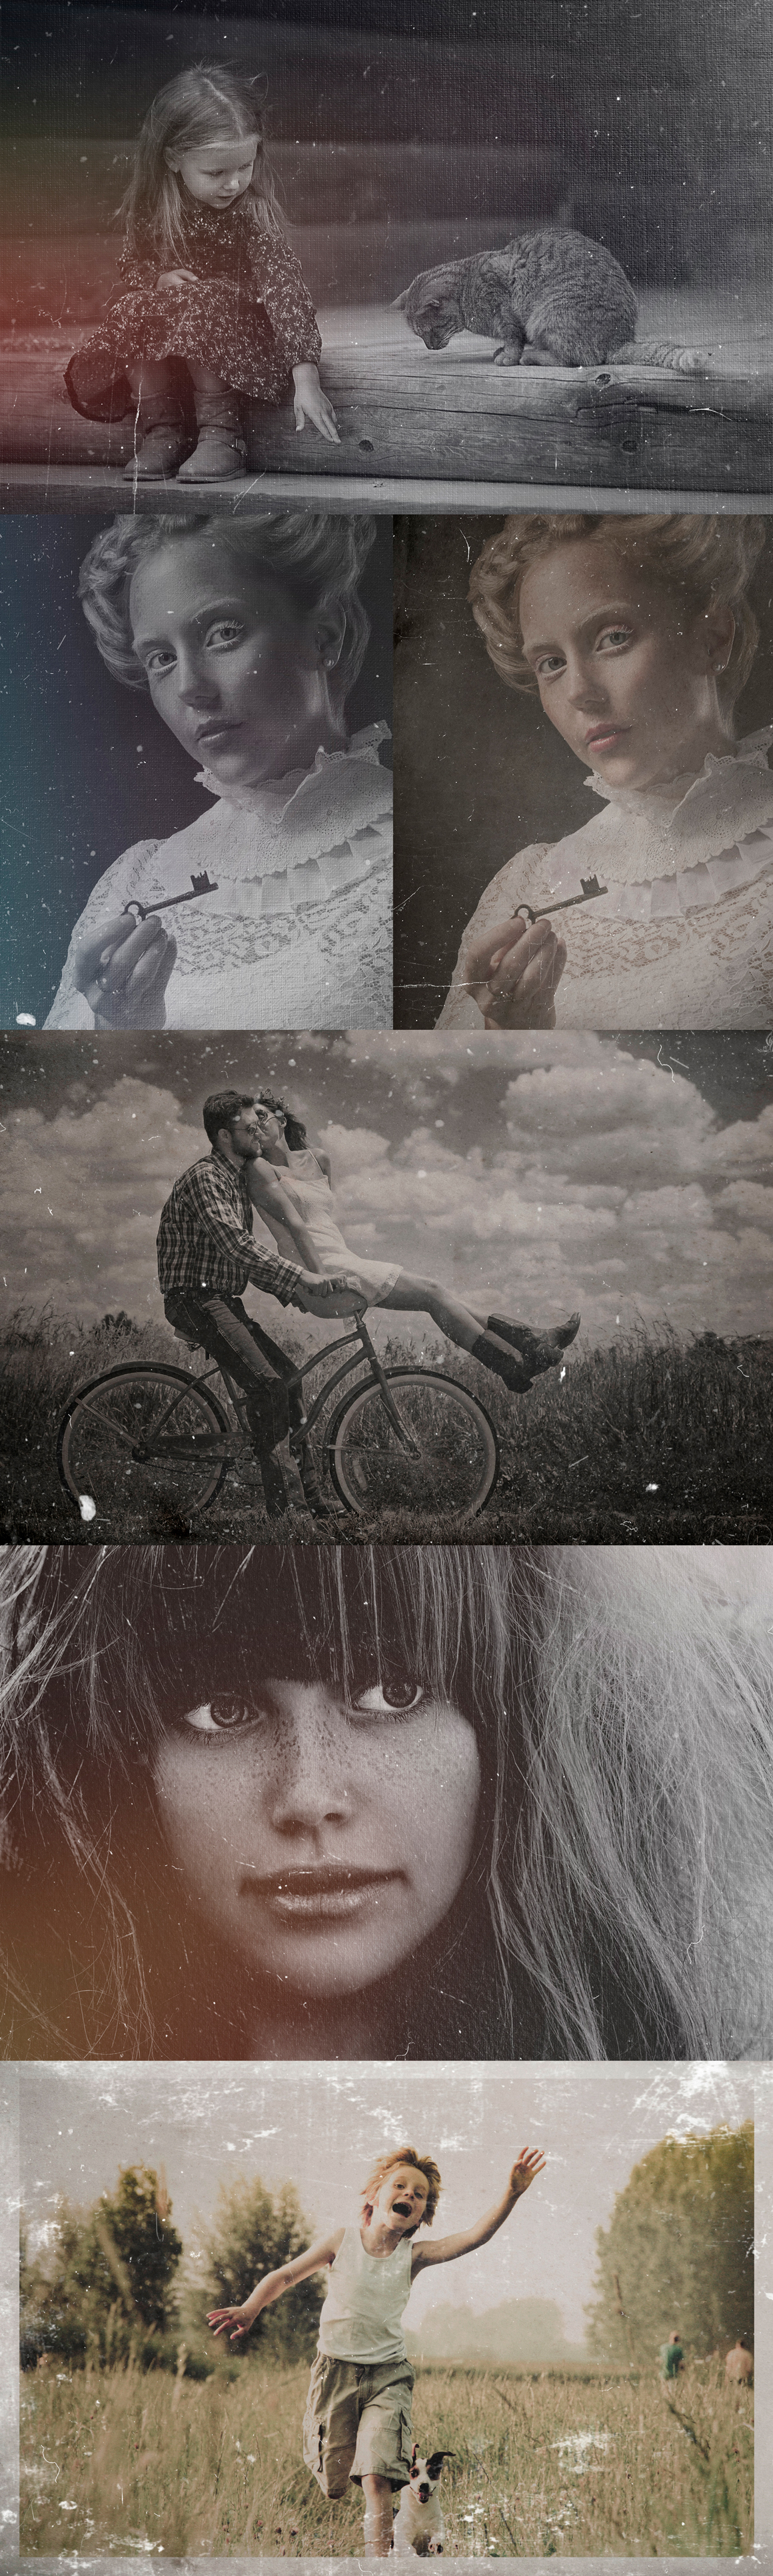 Dust And Scratches Film Effect